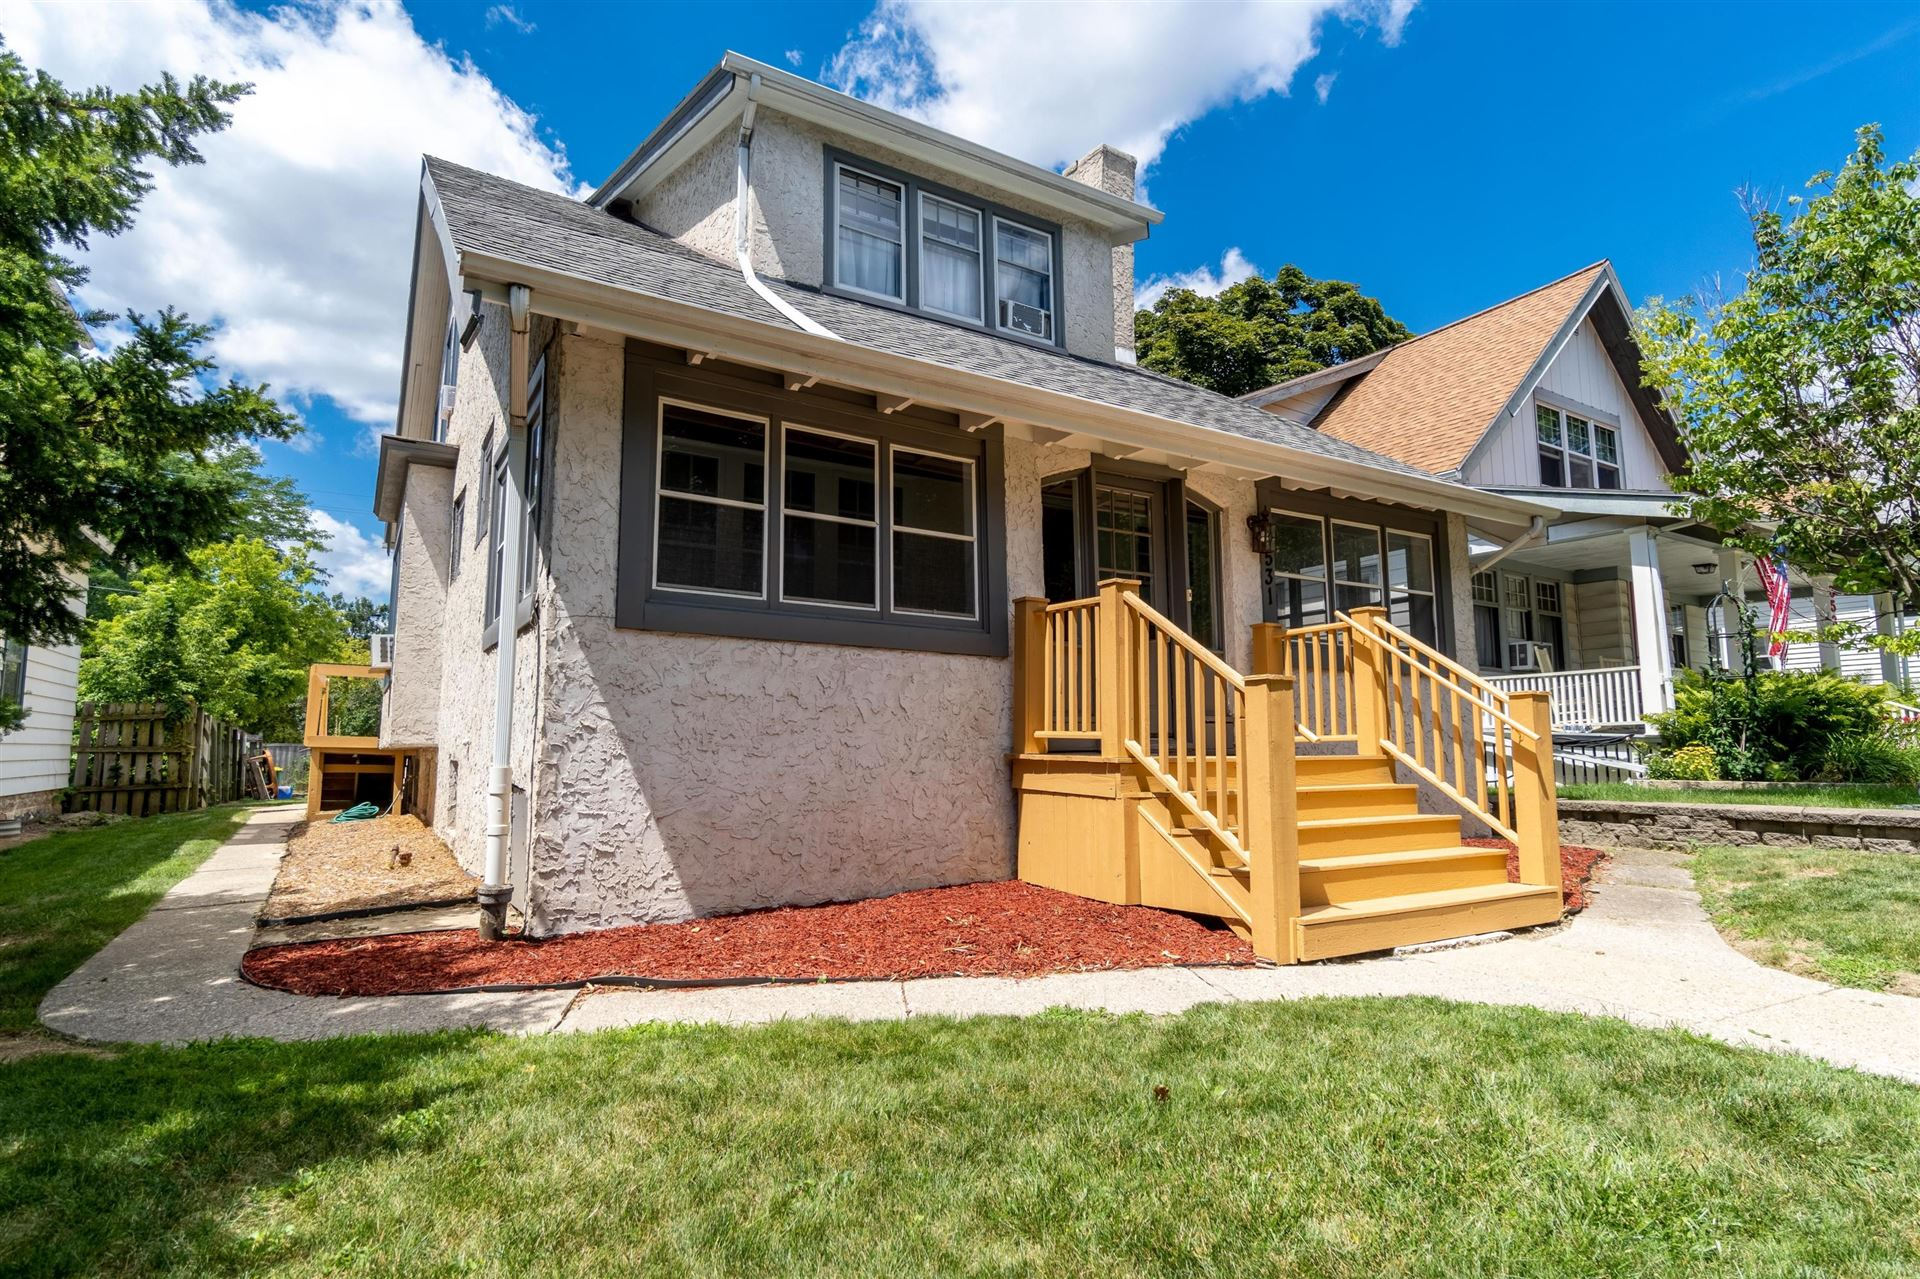 3531 N Murray Ave, Shorewood, WI 53211 - #: 1698903